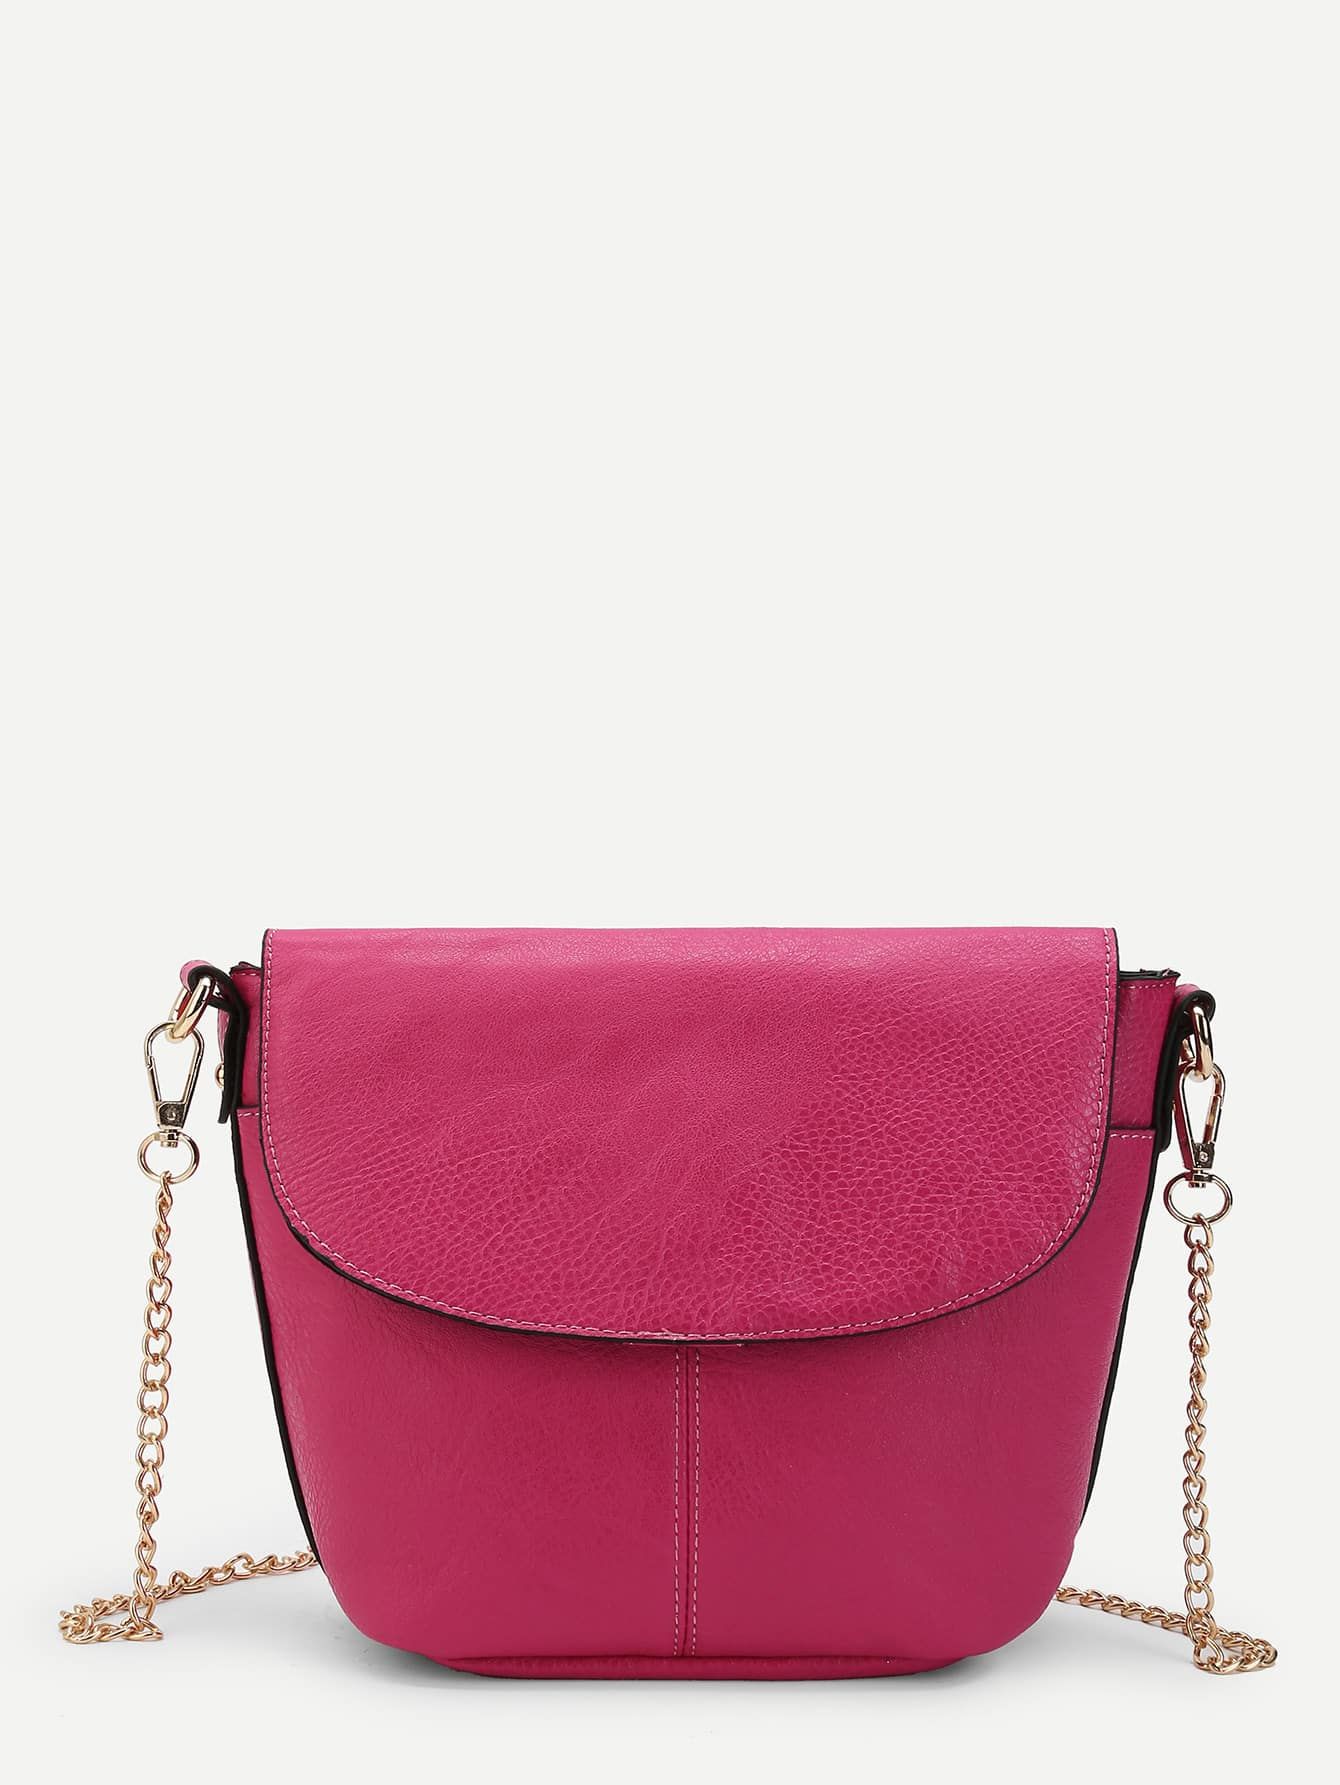 PU Flap Shoulder Bag With Chain Strap flap pu chain bag